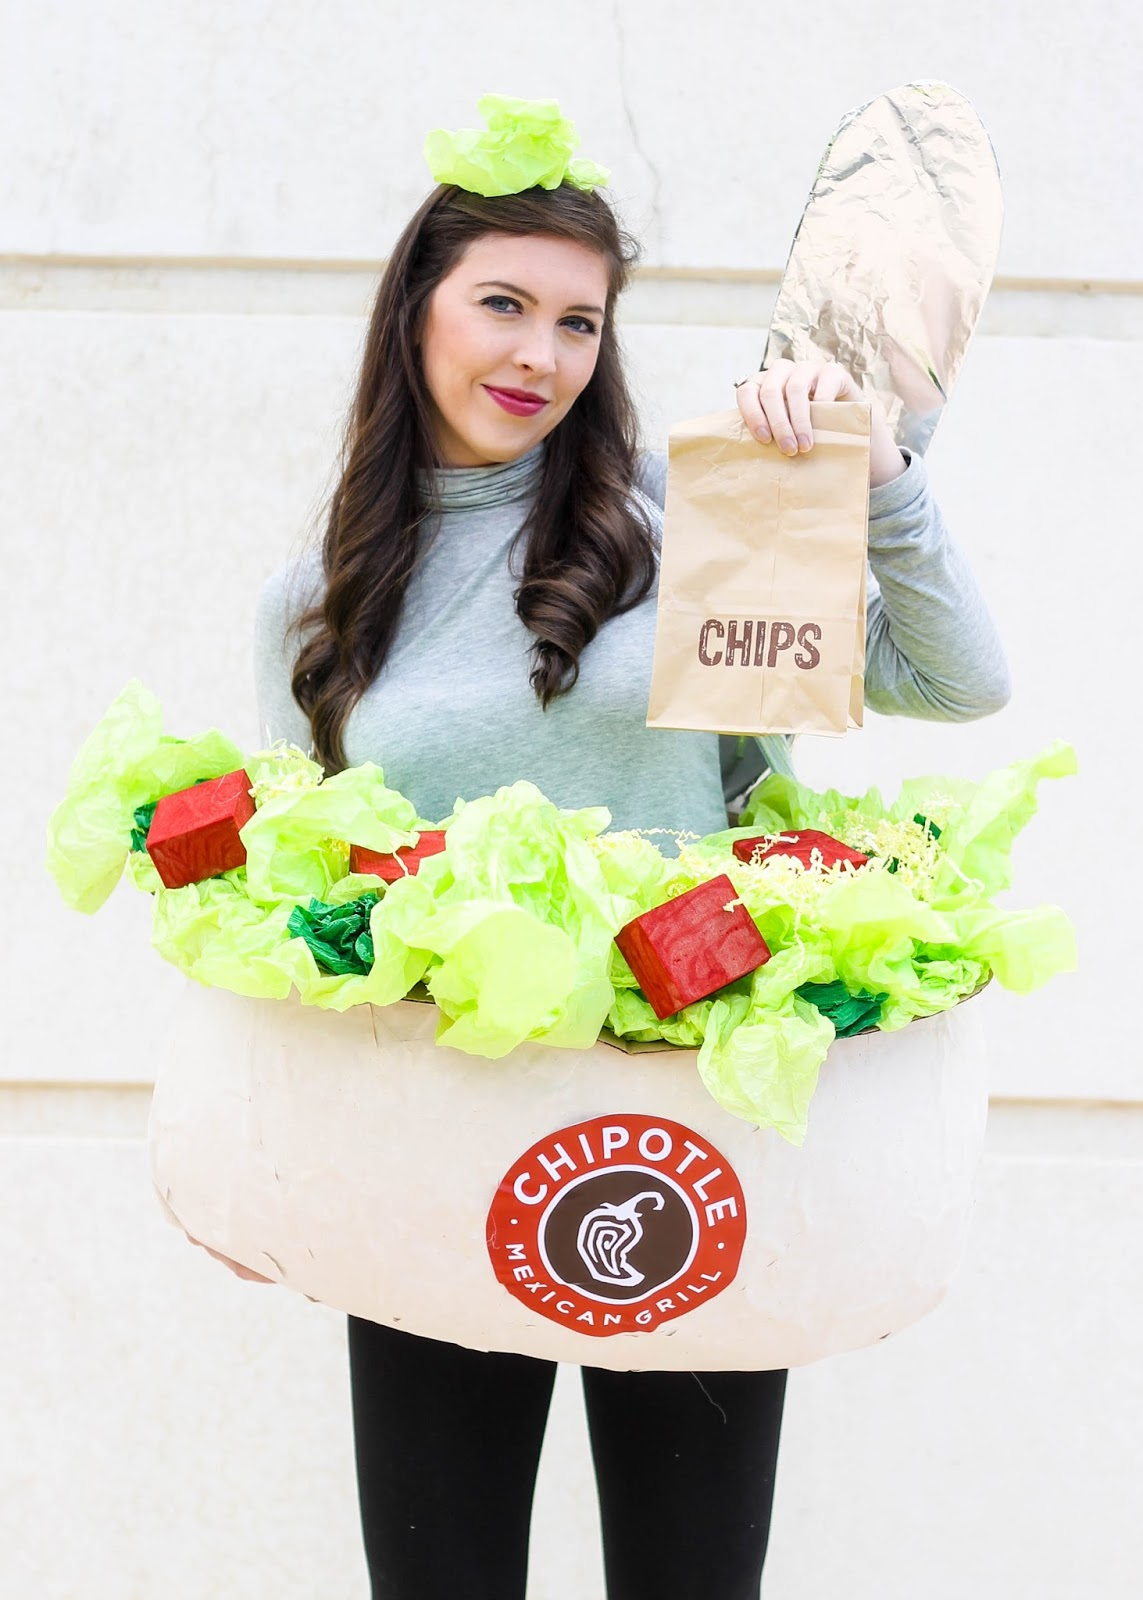 Halloween Chipotle Costume DIY